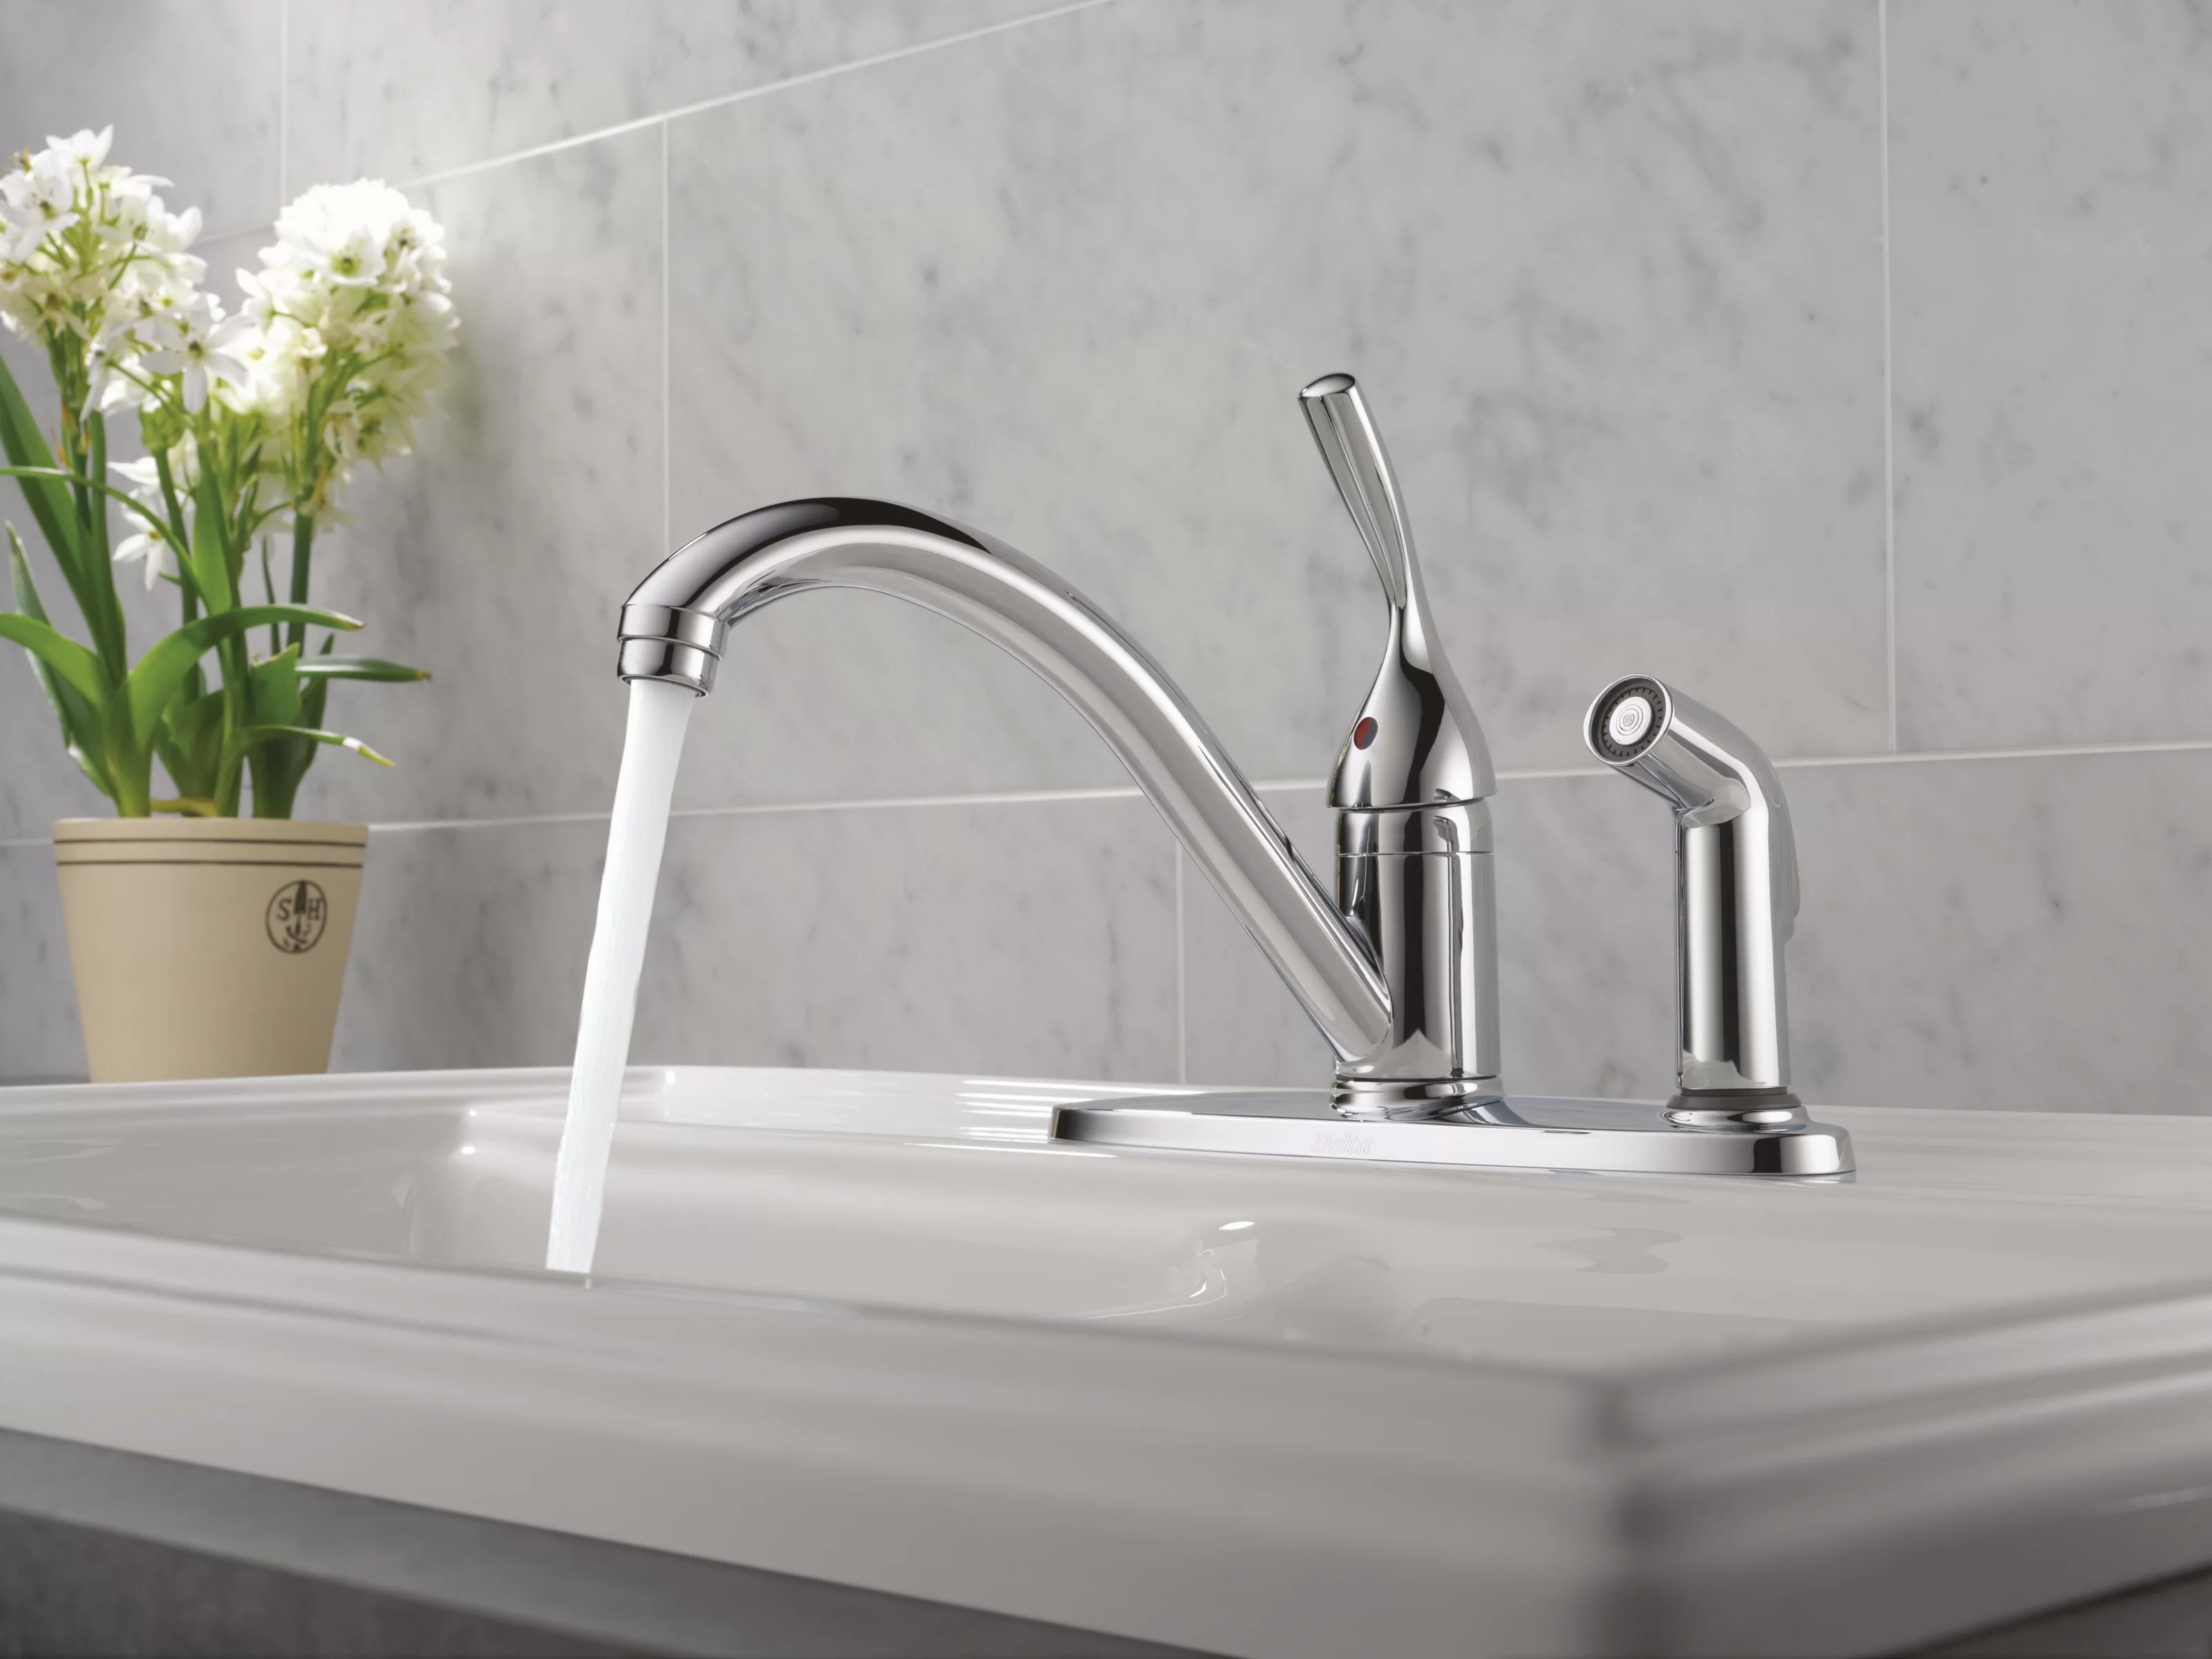 300 dst delta classic single handle standard kitchen faucet with side spray and diamond seal technology reviews wayfair